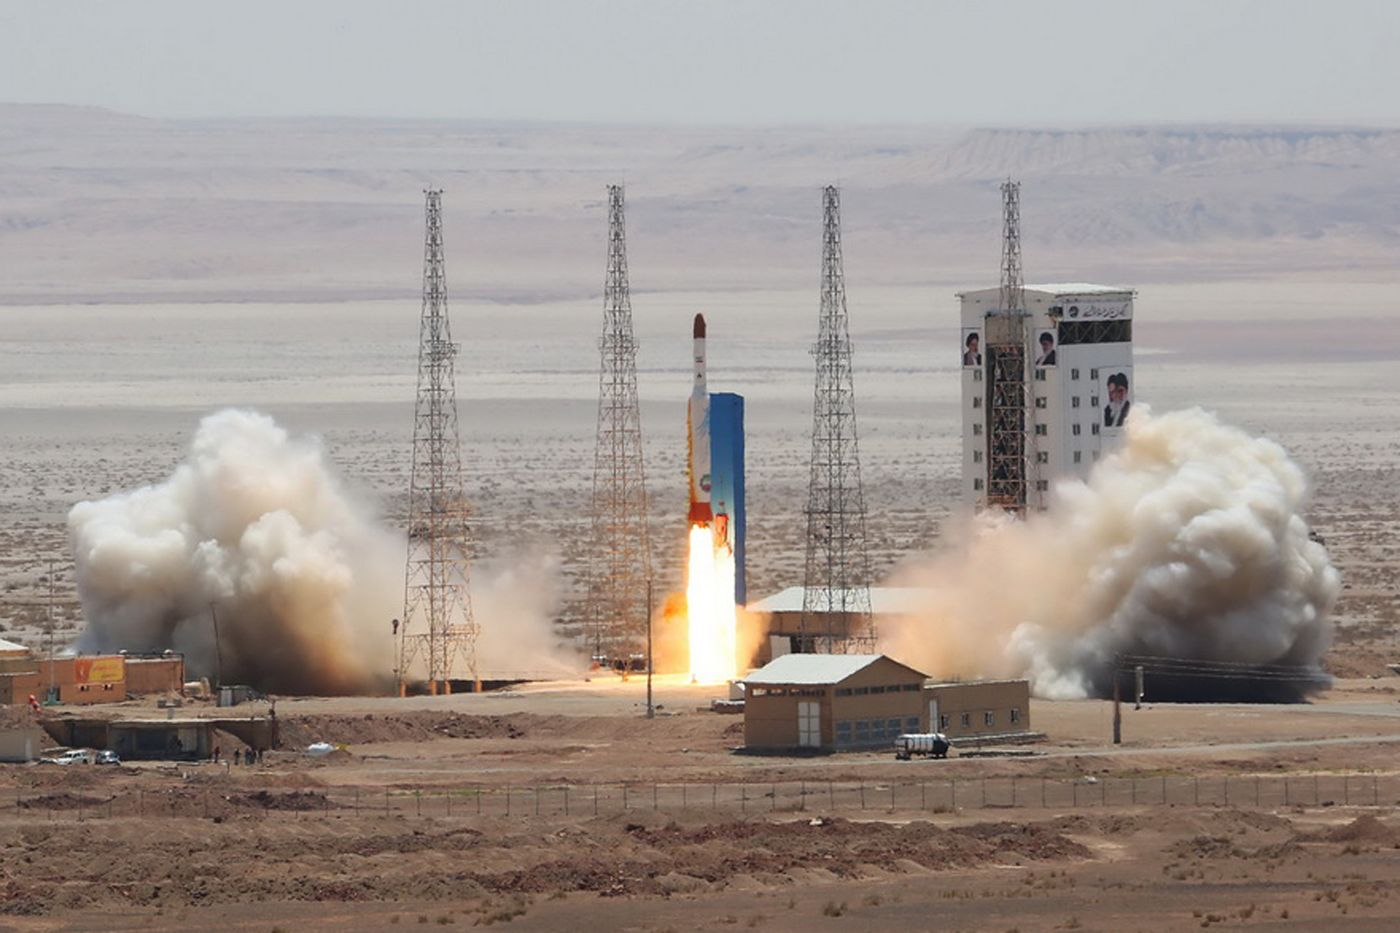 Western condemnation after failed Iran satellite launch